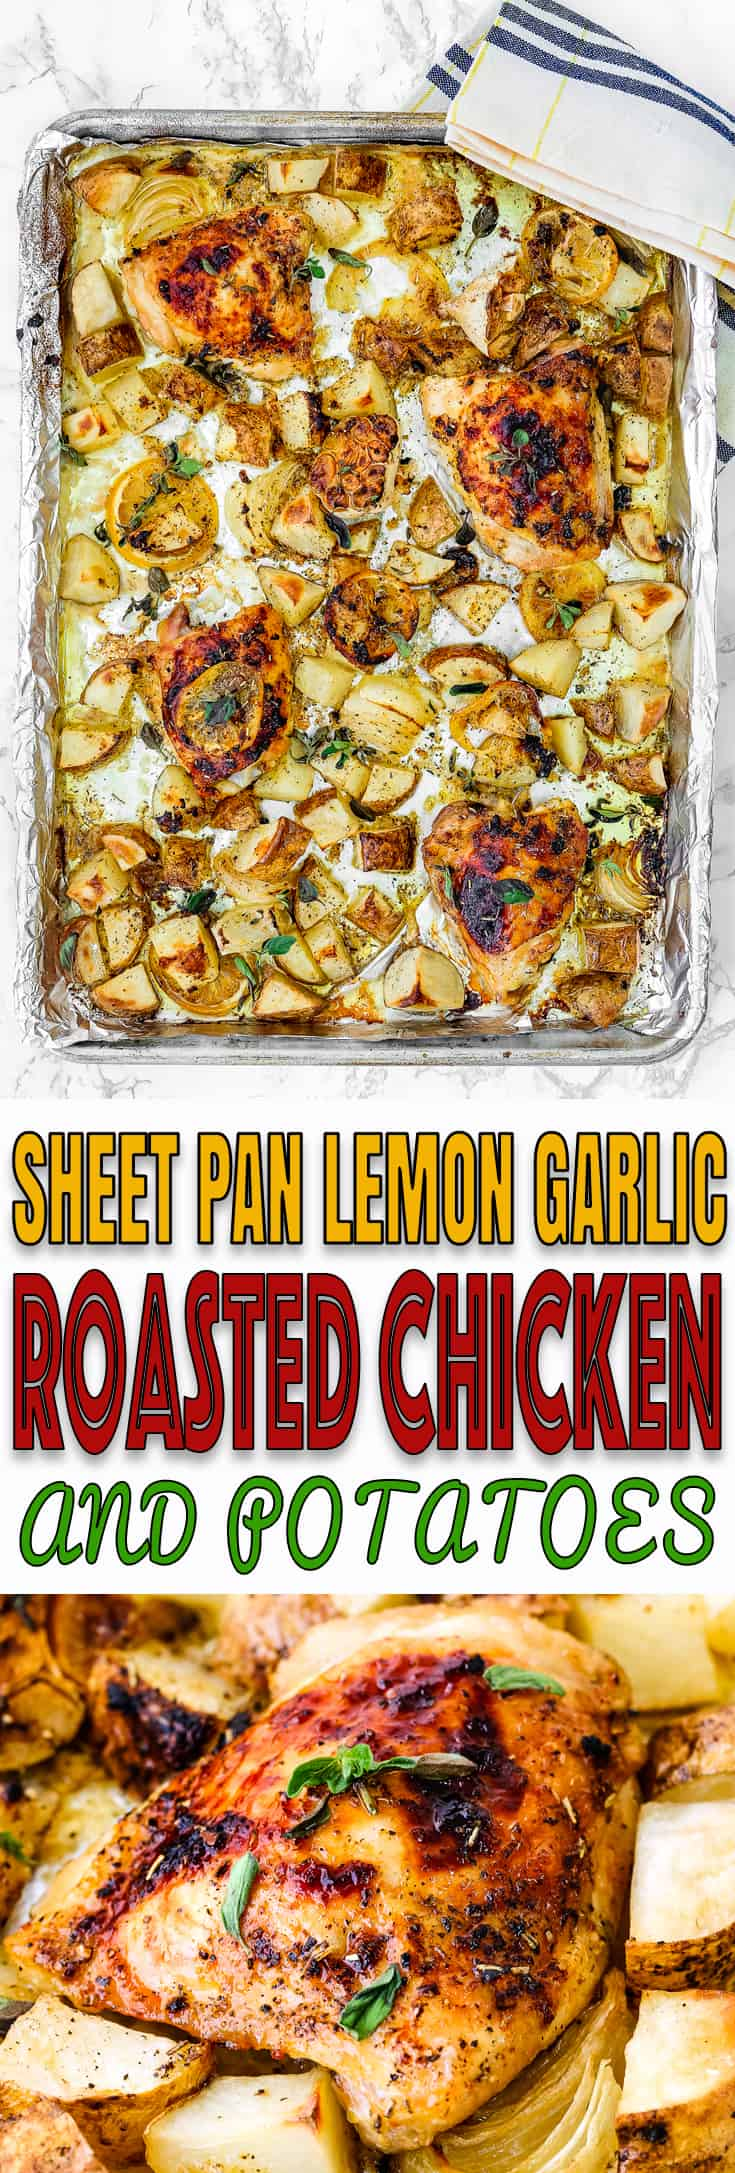 This Sheet Pan Lemon Garlic Roasted Chicken and Potatoes is incredibly simple, but seriously scrumptious! The chicken and potatoes are bathed in plenty of herbs and a delicious bright citrus sauce that will make your taste buds dance. The perfect the answer to hectic weeknights. Whole 30 friendly. https://mommyshomecooking.com